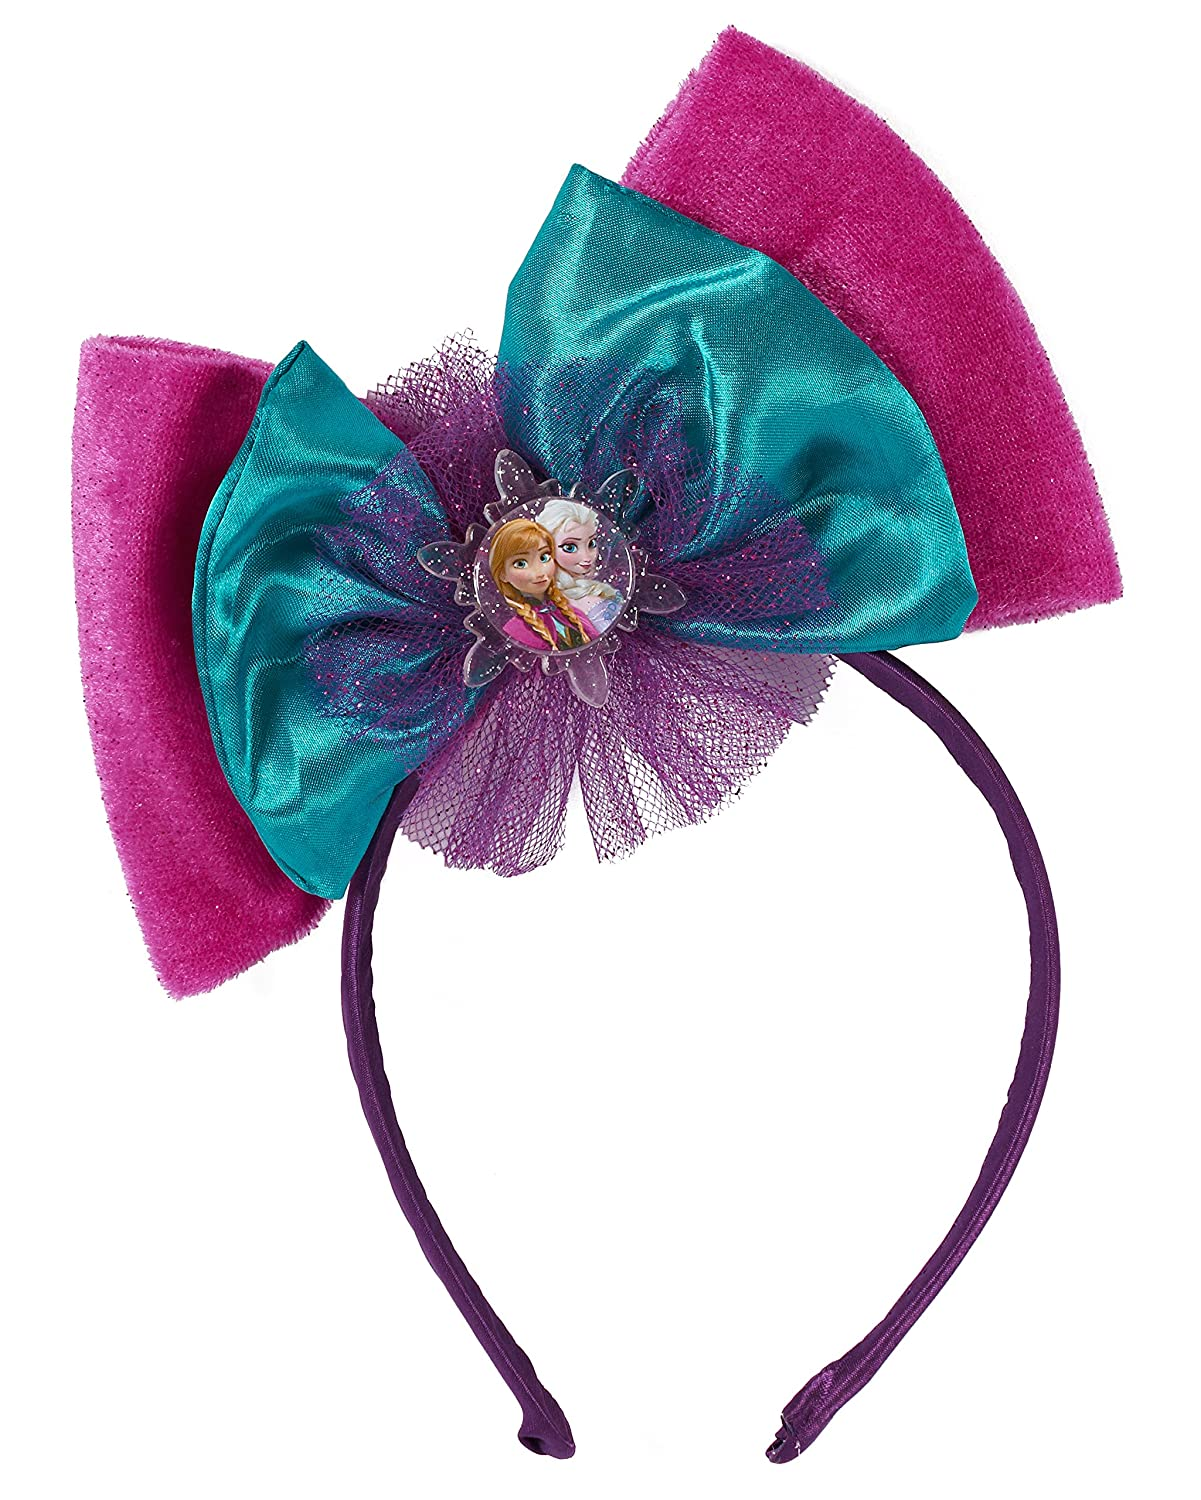 American Greetings Frozen Deluxe Headband Party Supplies American Greetings- Toys 5386308